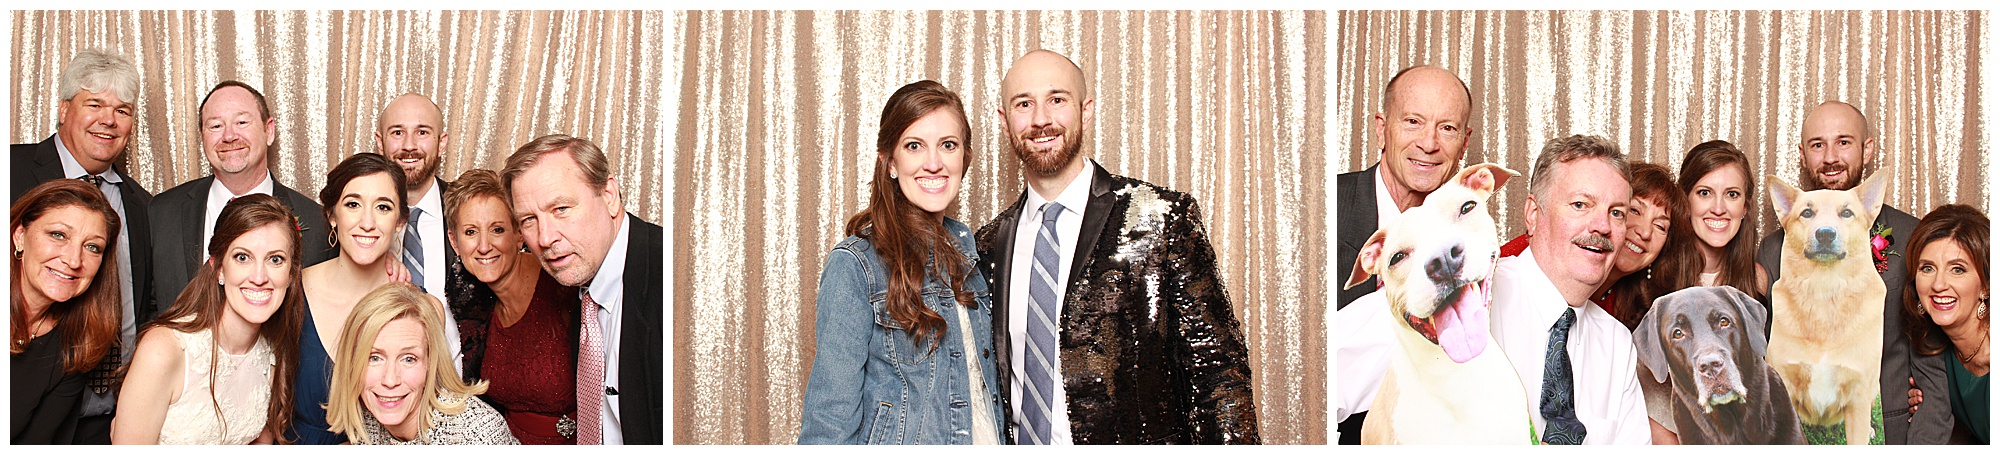 austin wedding photo booth_0022.jpg